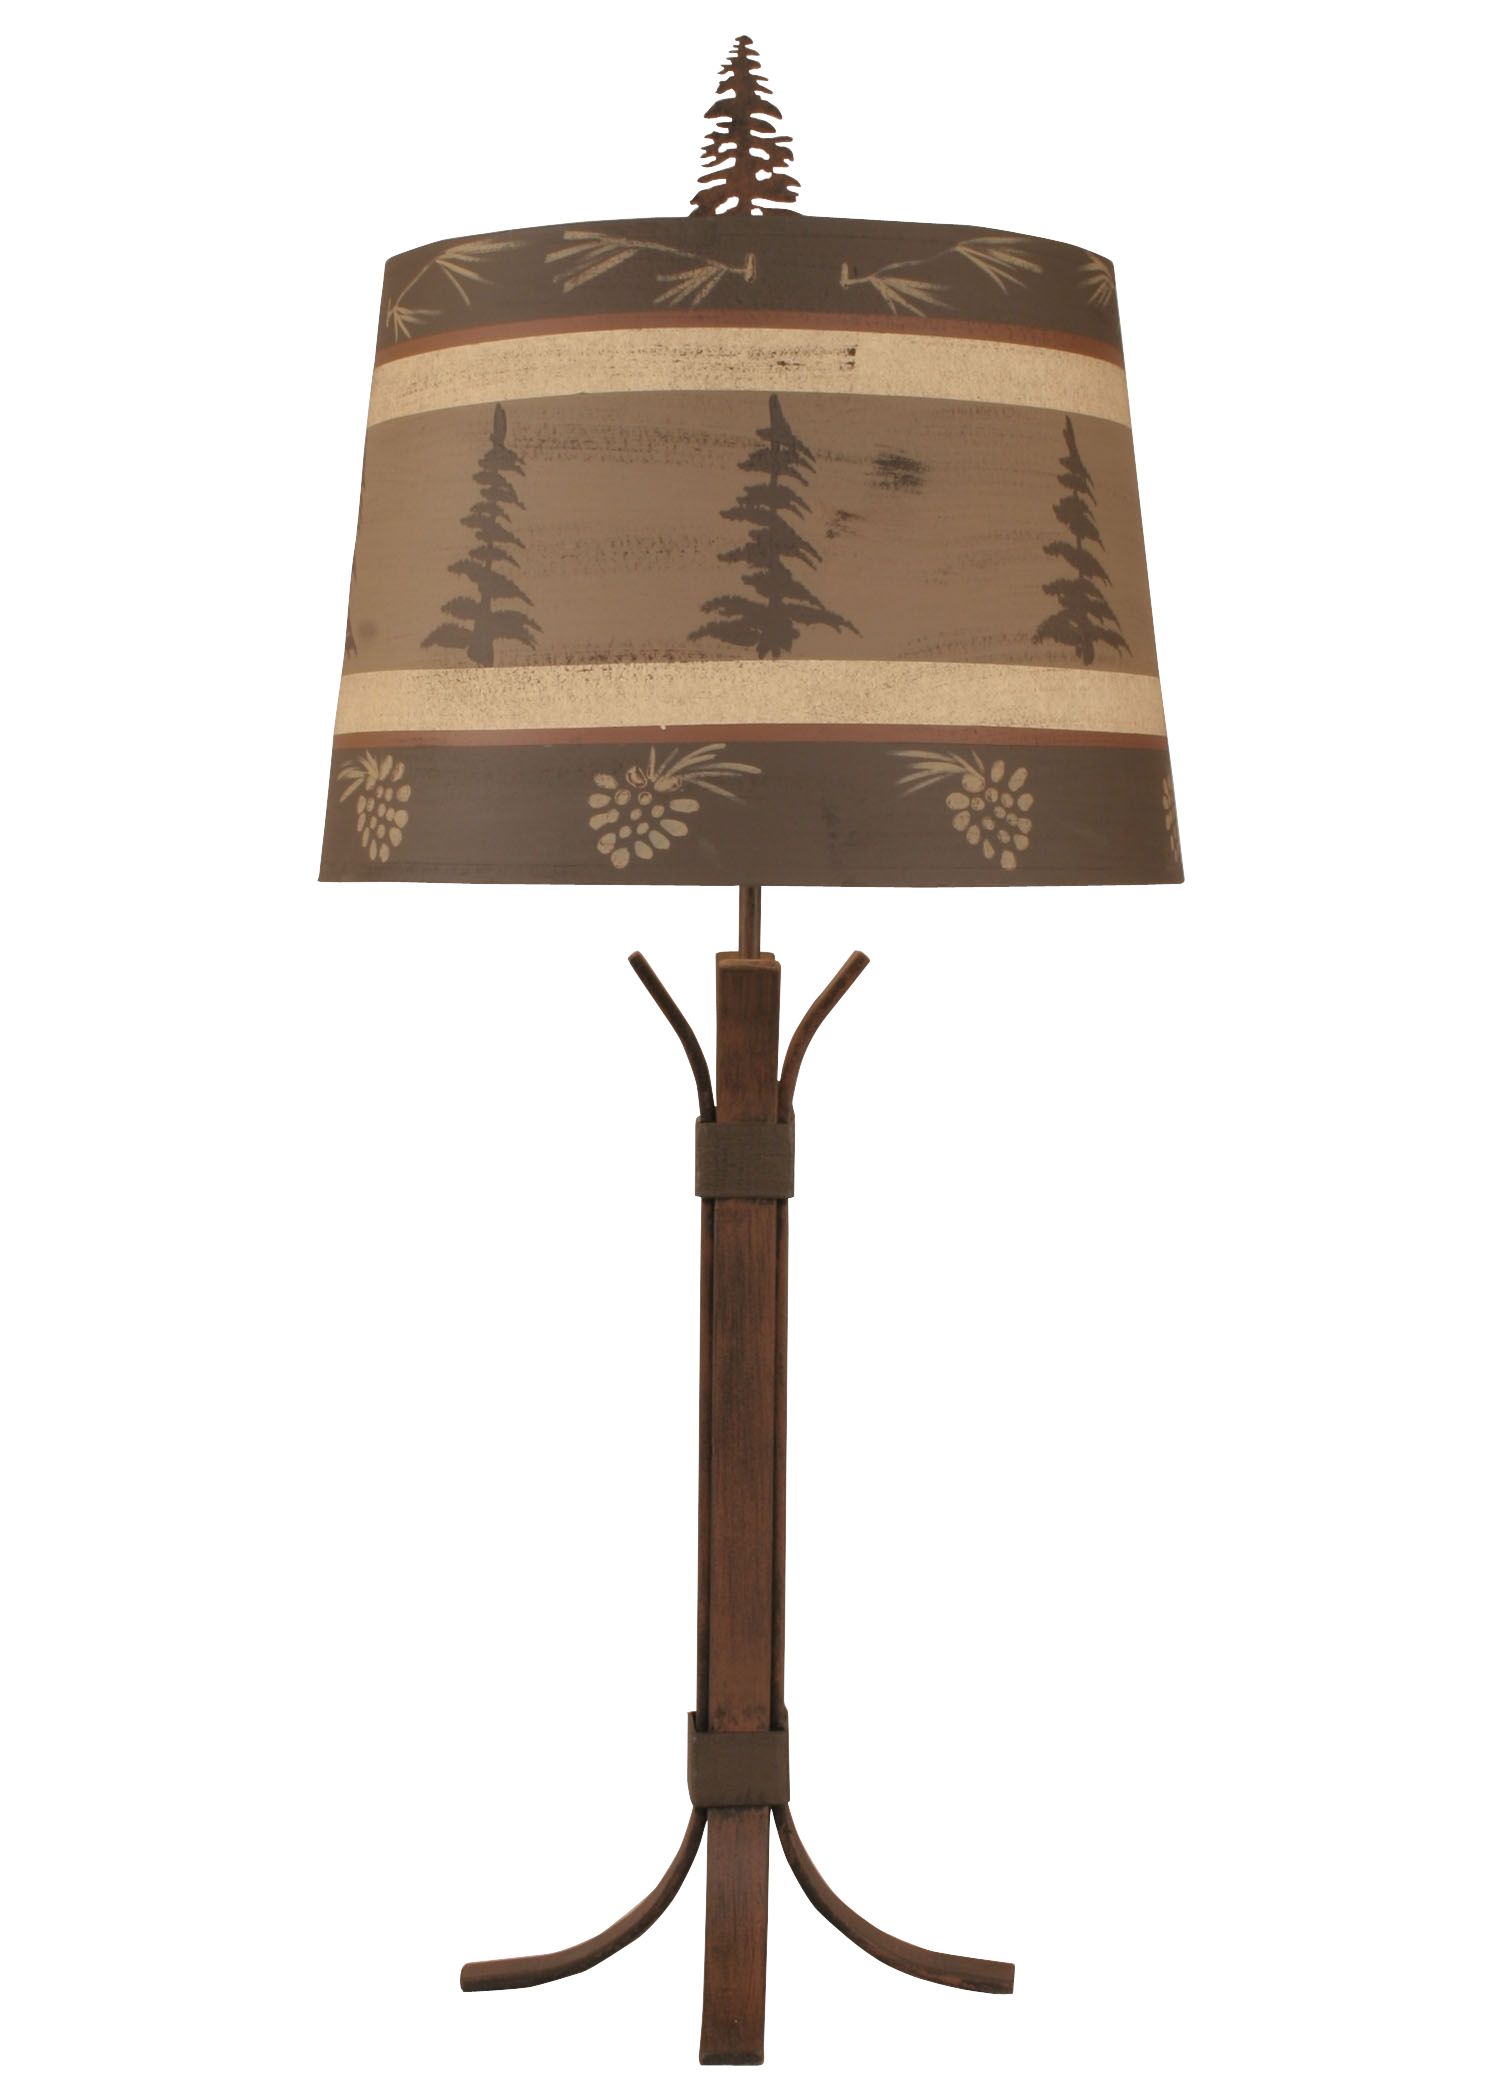 4 Leg Iron Table Lamp w/ Tree and Pine Cone Shade - Coast Lamp Shop